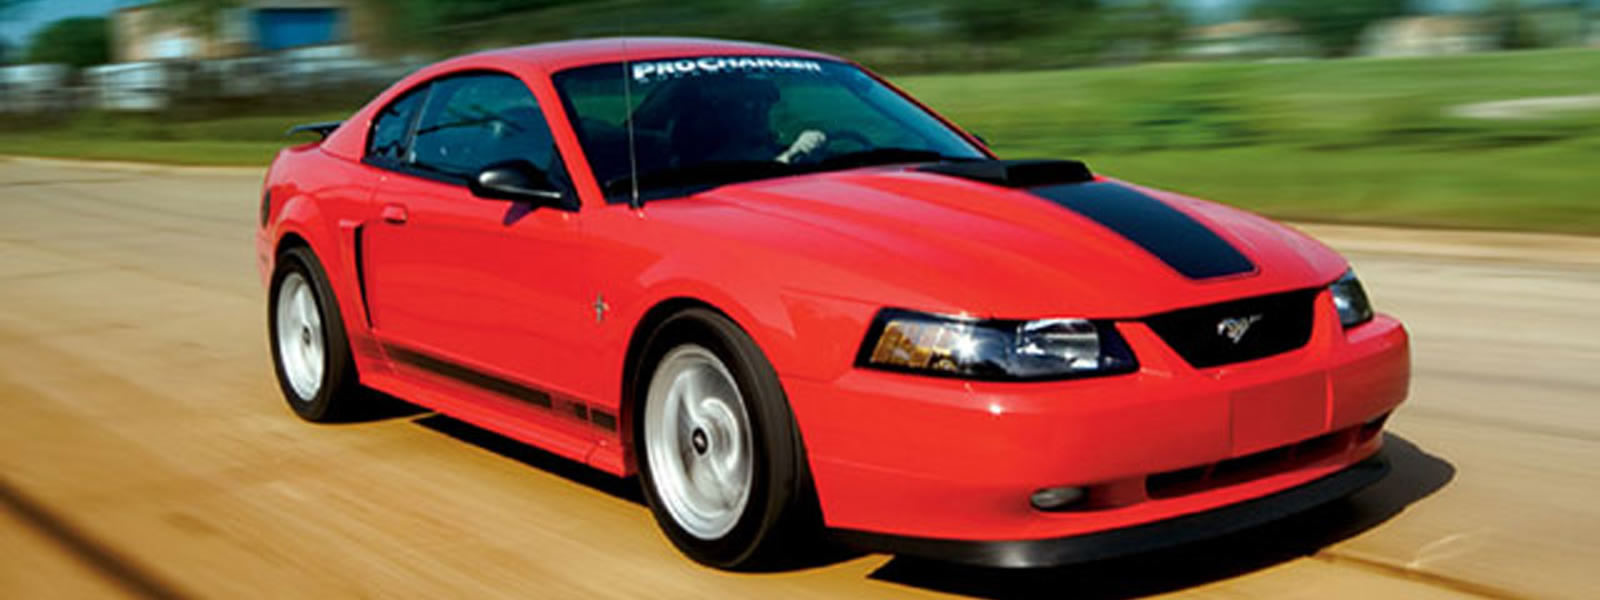 The Ford Mustang of 2003 is also just about great in its fuel efficiency where the numbers are very much comparable to any other leading car.